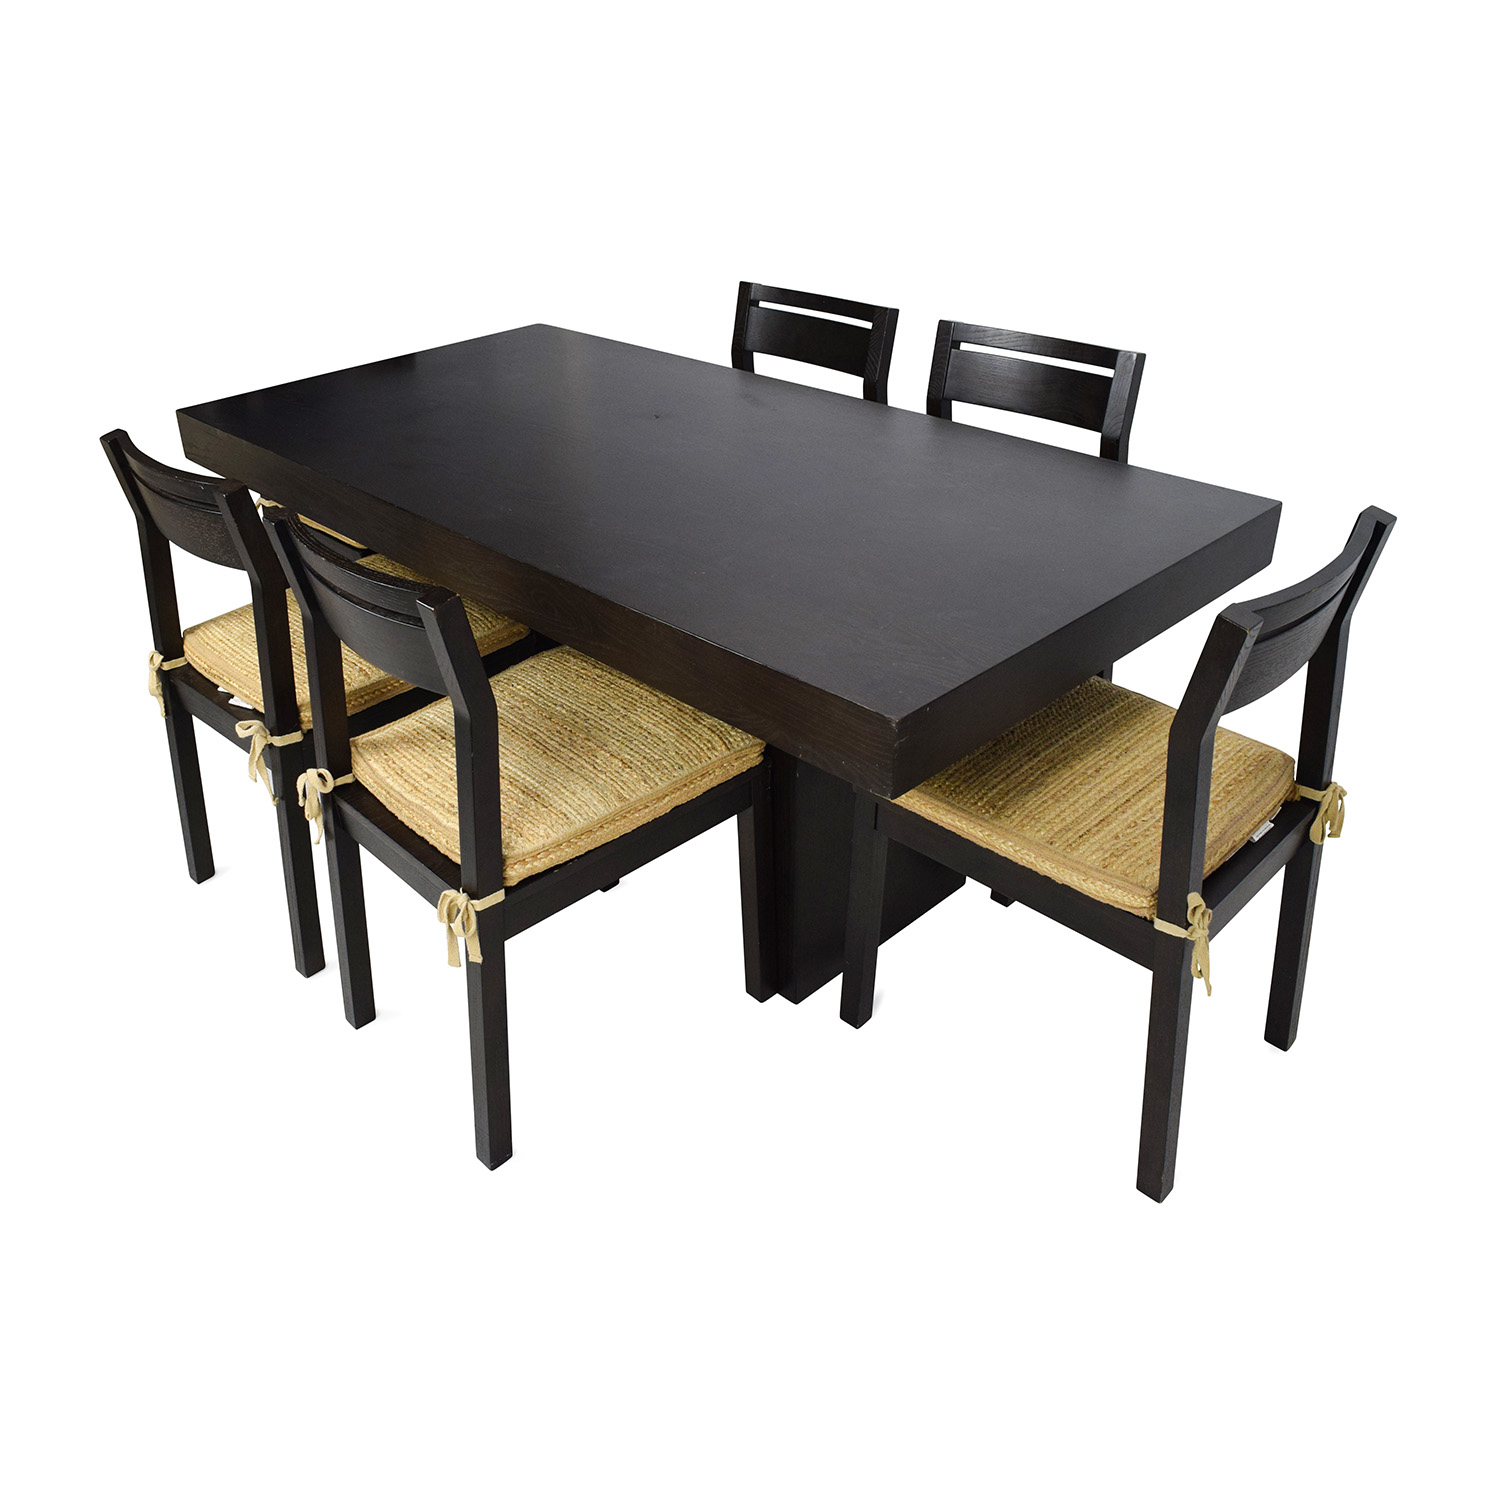 West Elm West Elm Dining Set price